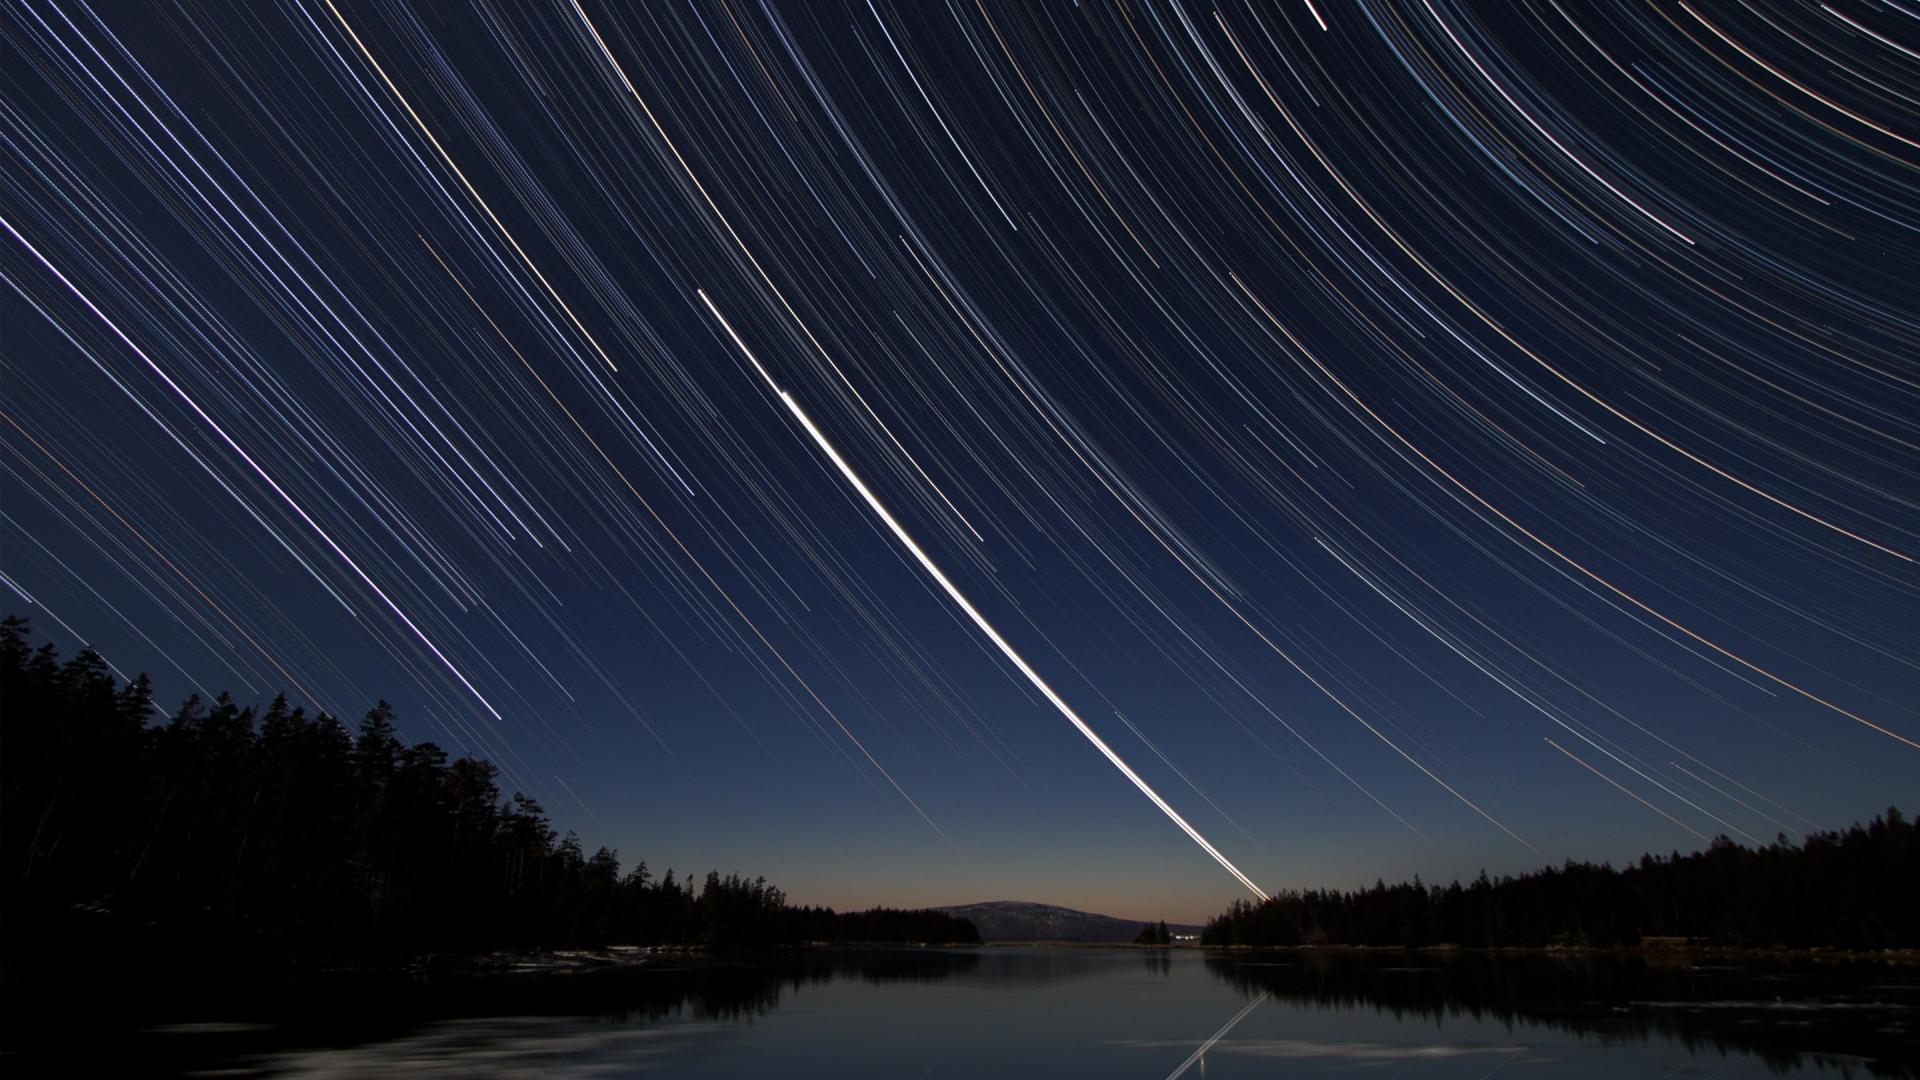 1080p Long Exposure Stars 1920x1080 Download Hd Wallpaper Wallpapertip